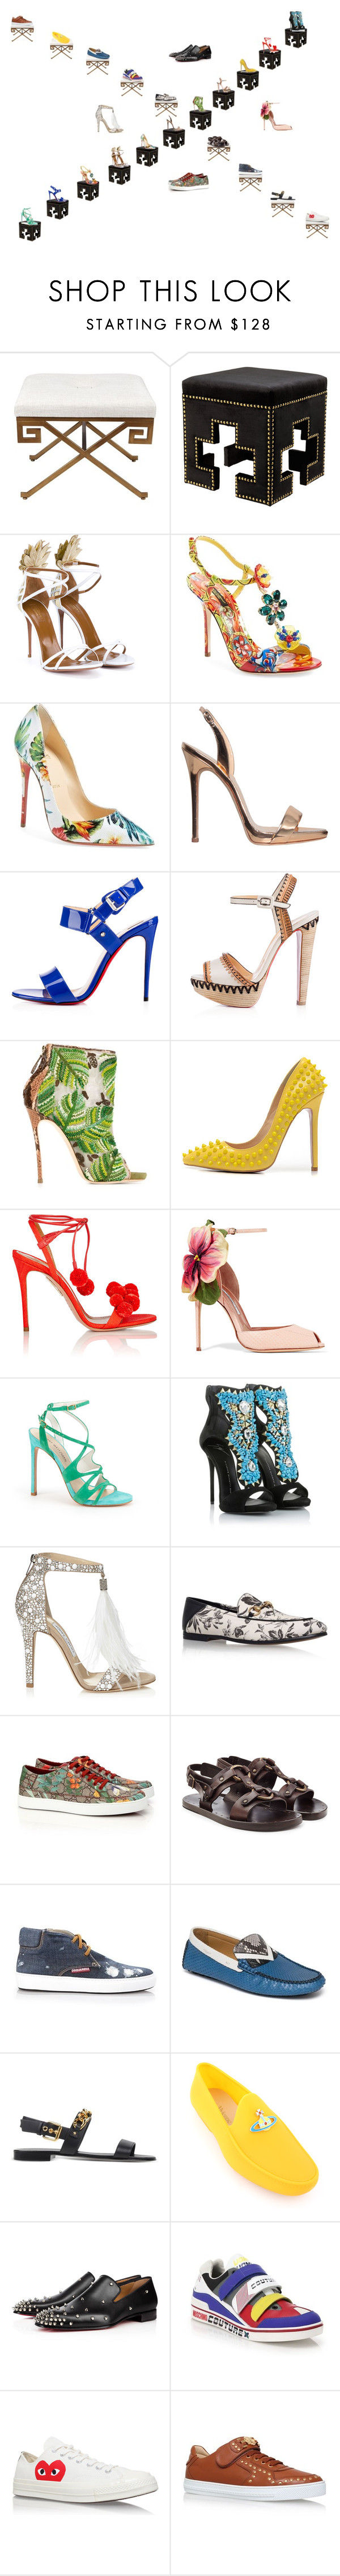 """Summer Shoes - Man vs Woman"" by studiodinteriors on Polyvore featuring Eichholtz, Aquazzura, Dolce&Gabbana, Christian Louboutin, Giuseppe Zanotti, Dsquared2, Posh Girl, Brian Atwood, Stuart Weitzman and Jimmy Choo"